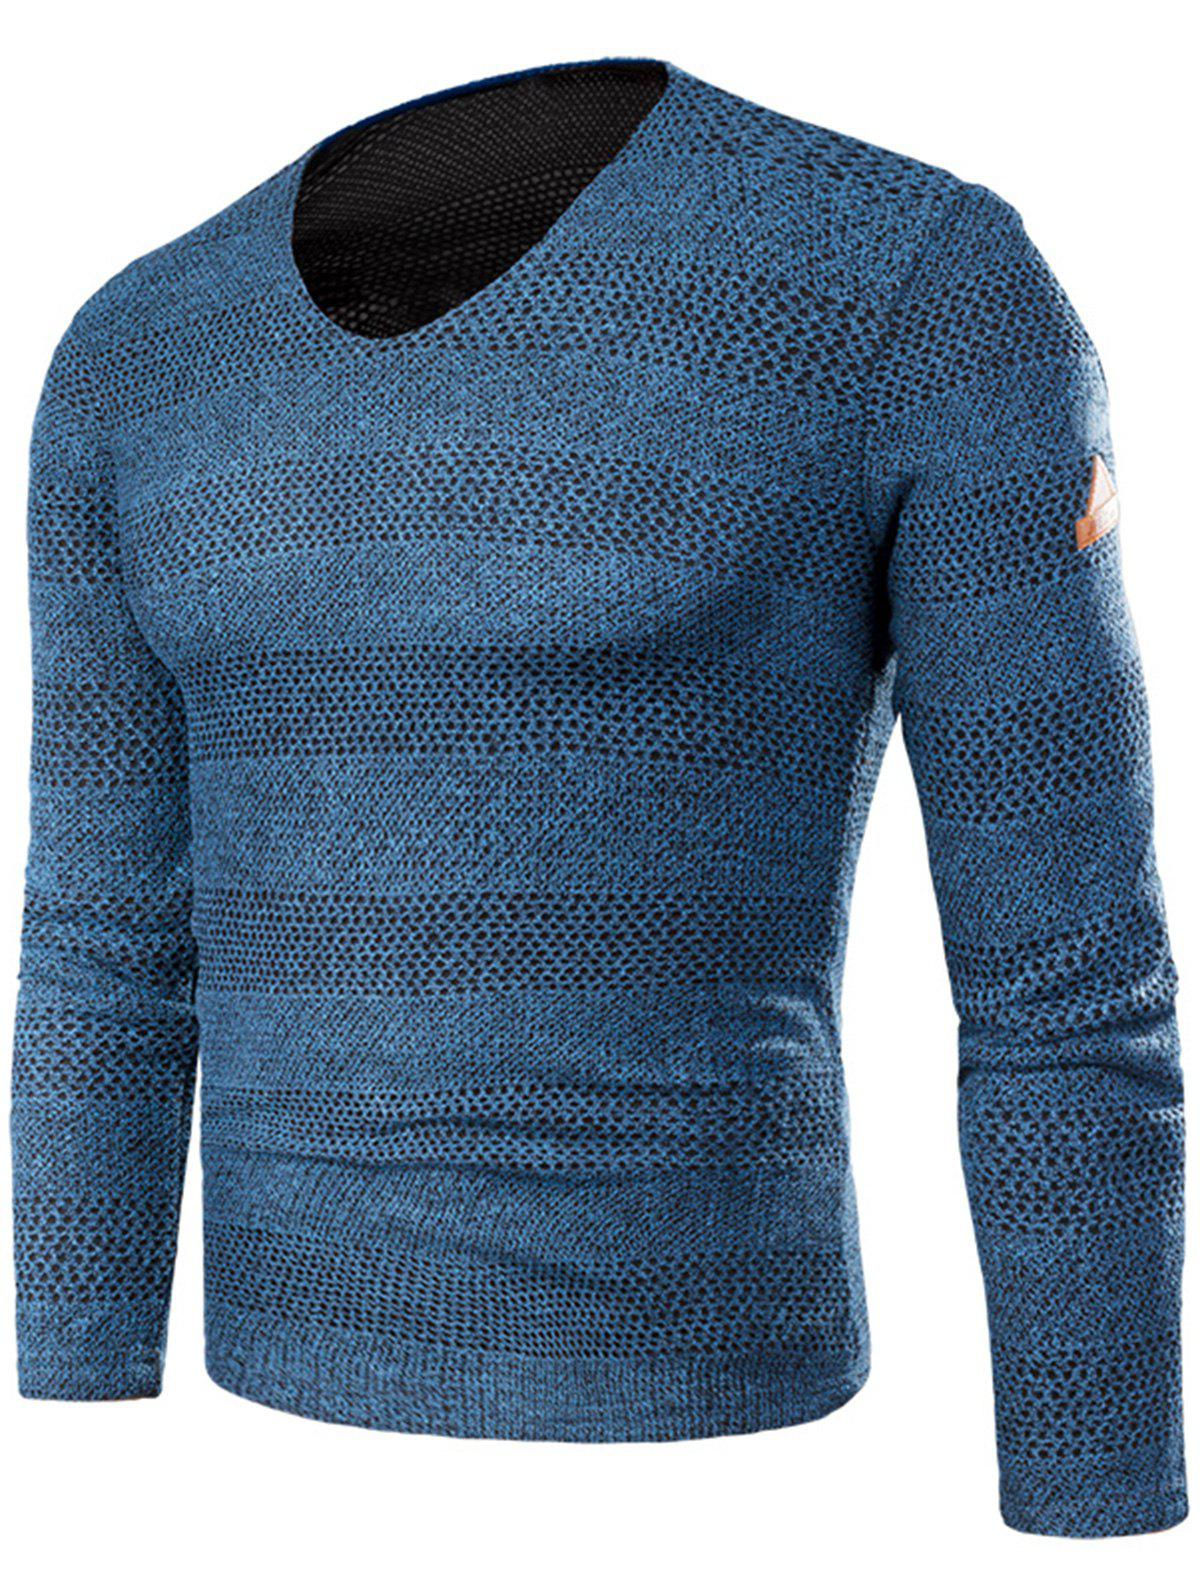 Knitted V Neck Long Sleeve T-shirt - BLUE 2XL